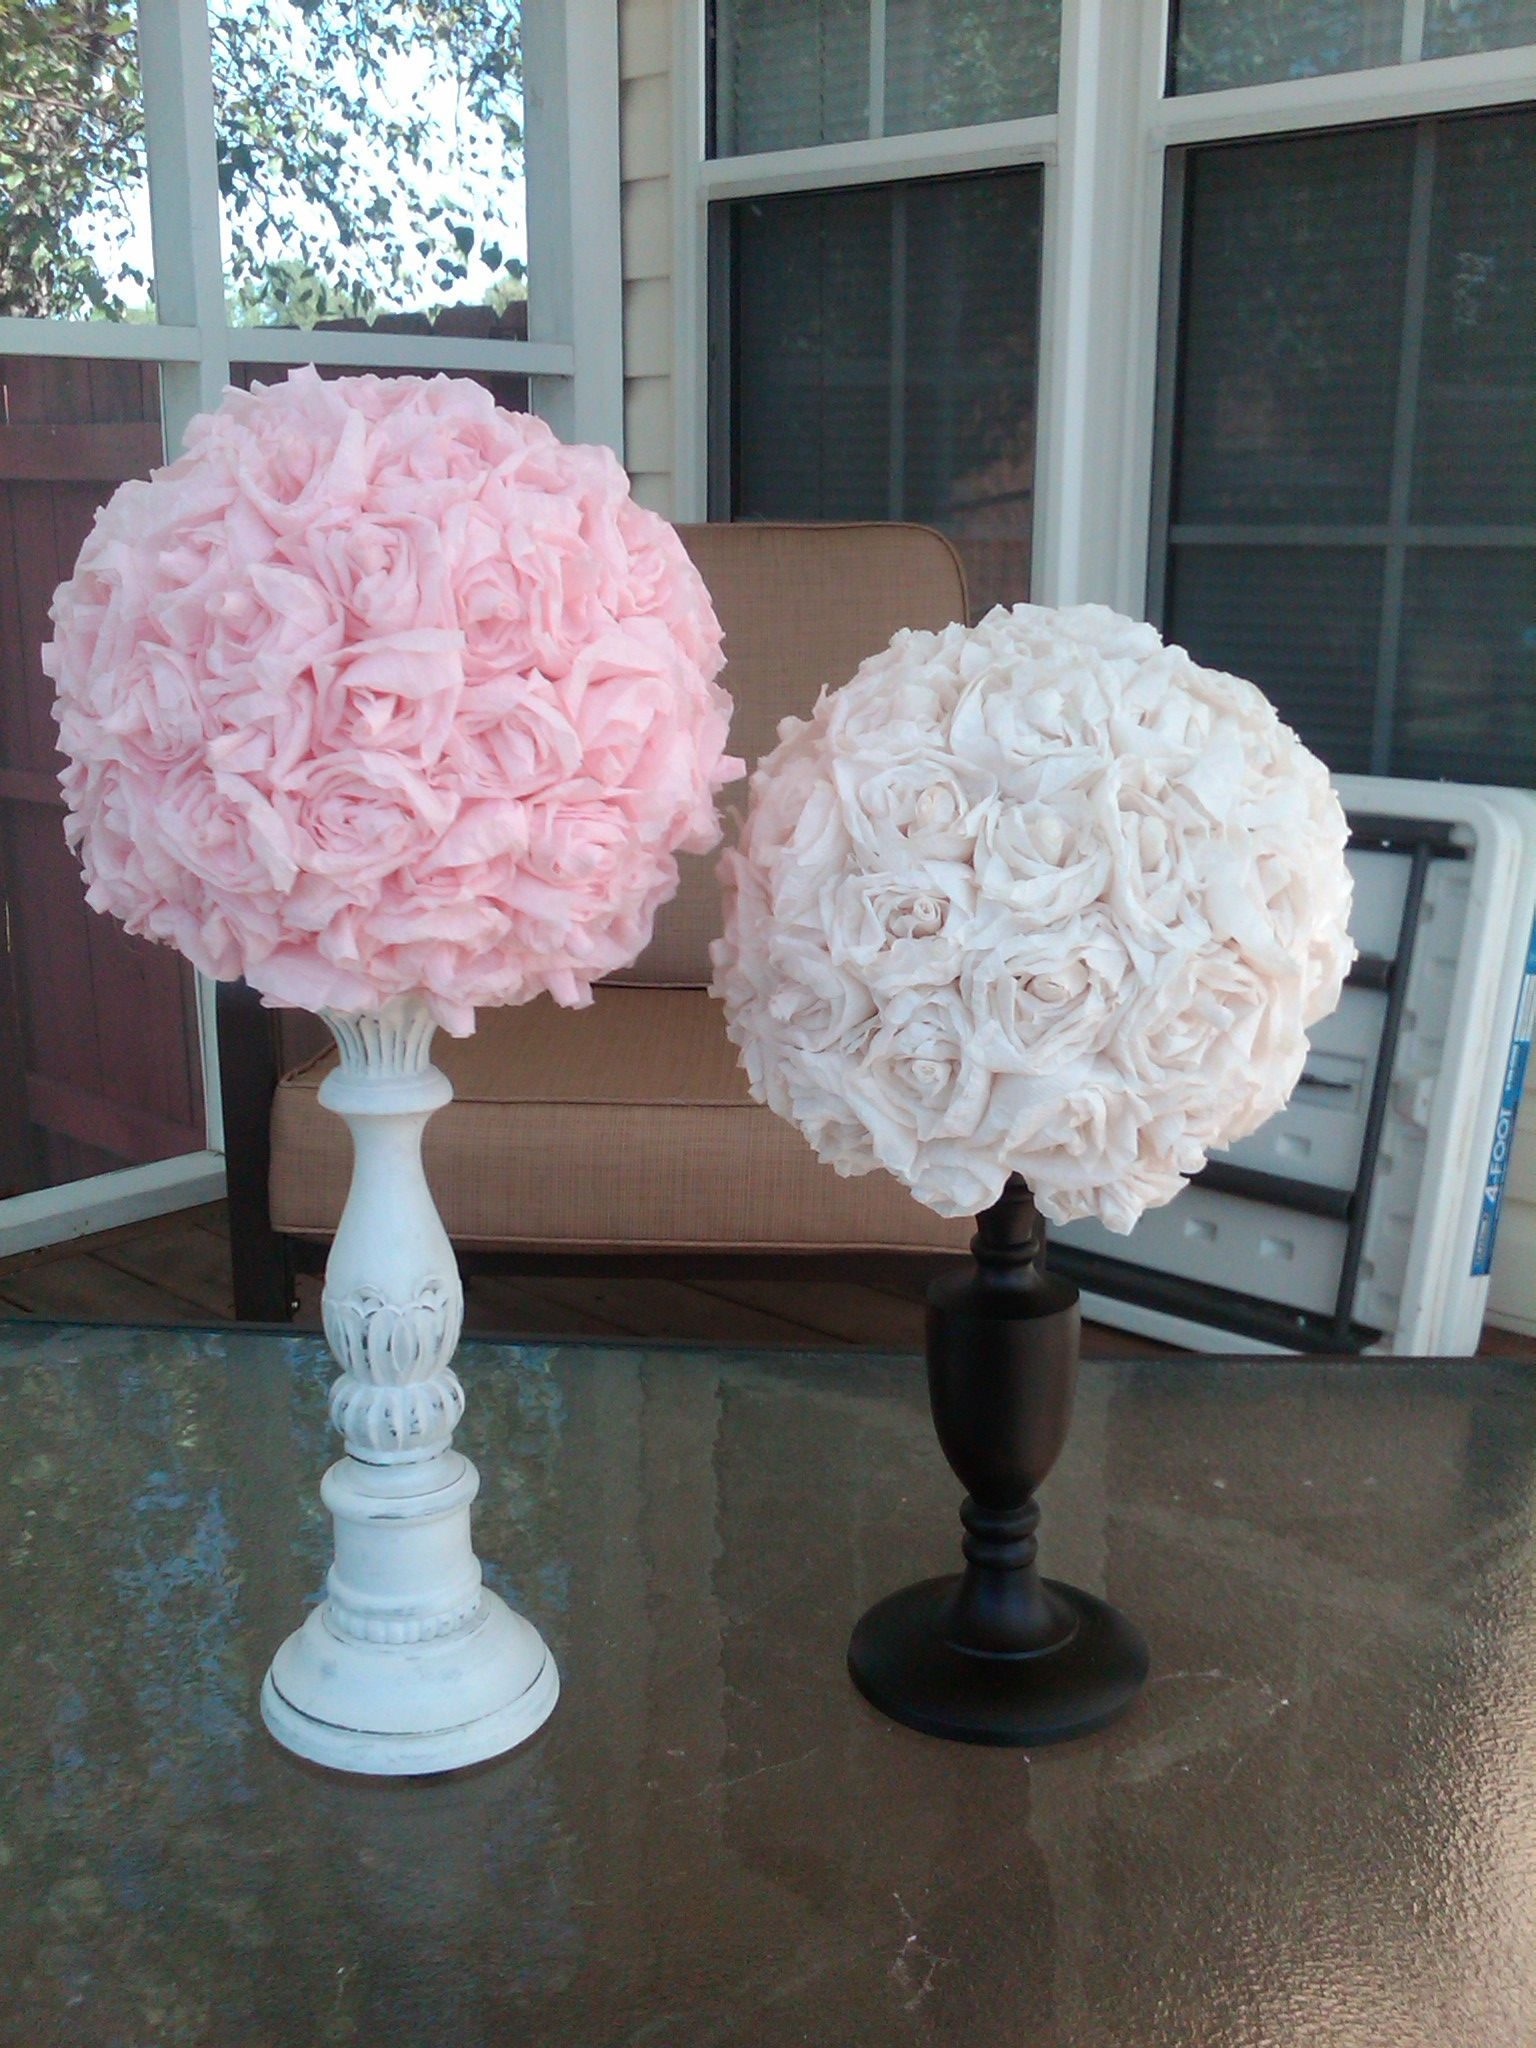 Crepe Paper Flower Balls Diy Craftsdecor Pinterest Flower